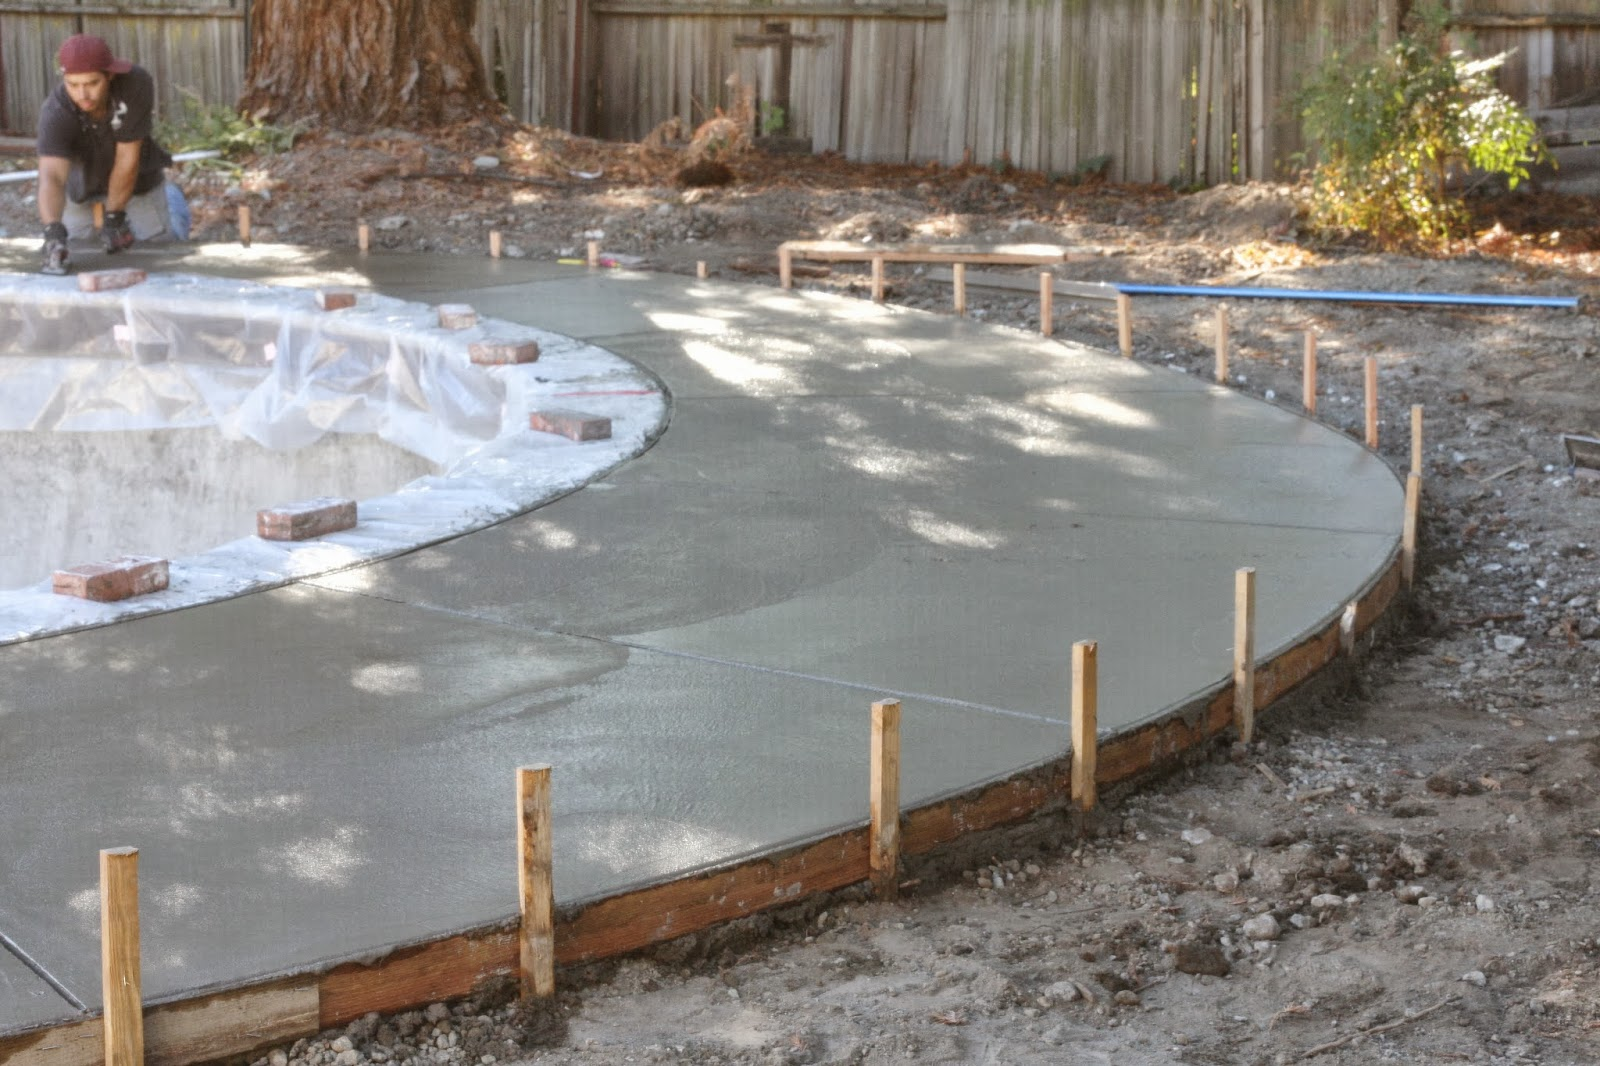 Swimming pool update it 39 s done simply organized - How soon can you swim after plastering pool ...